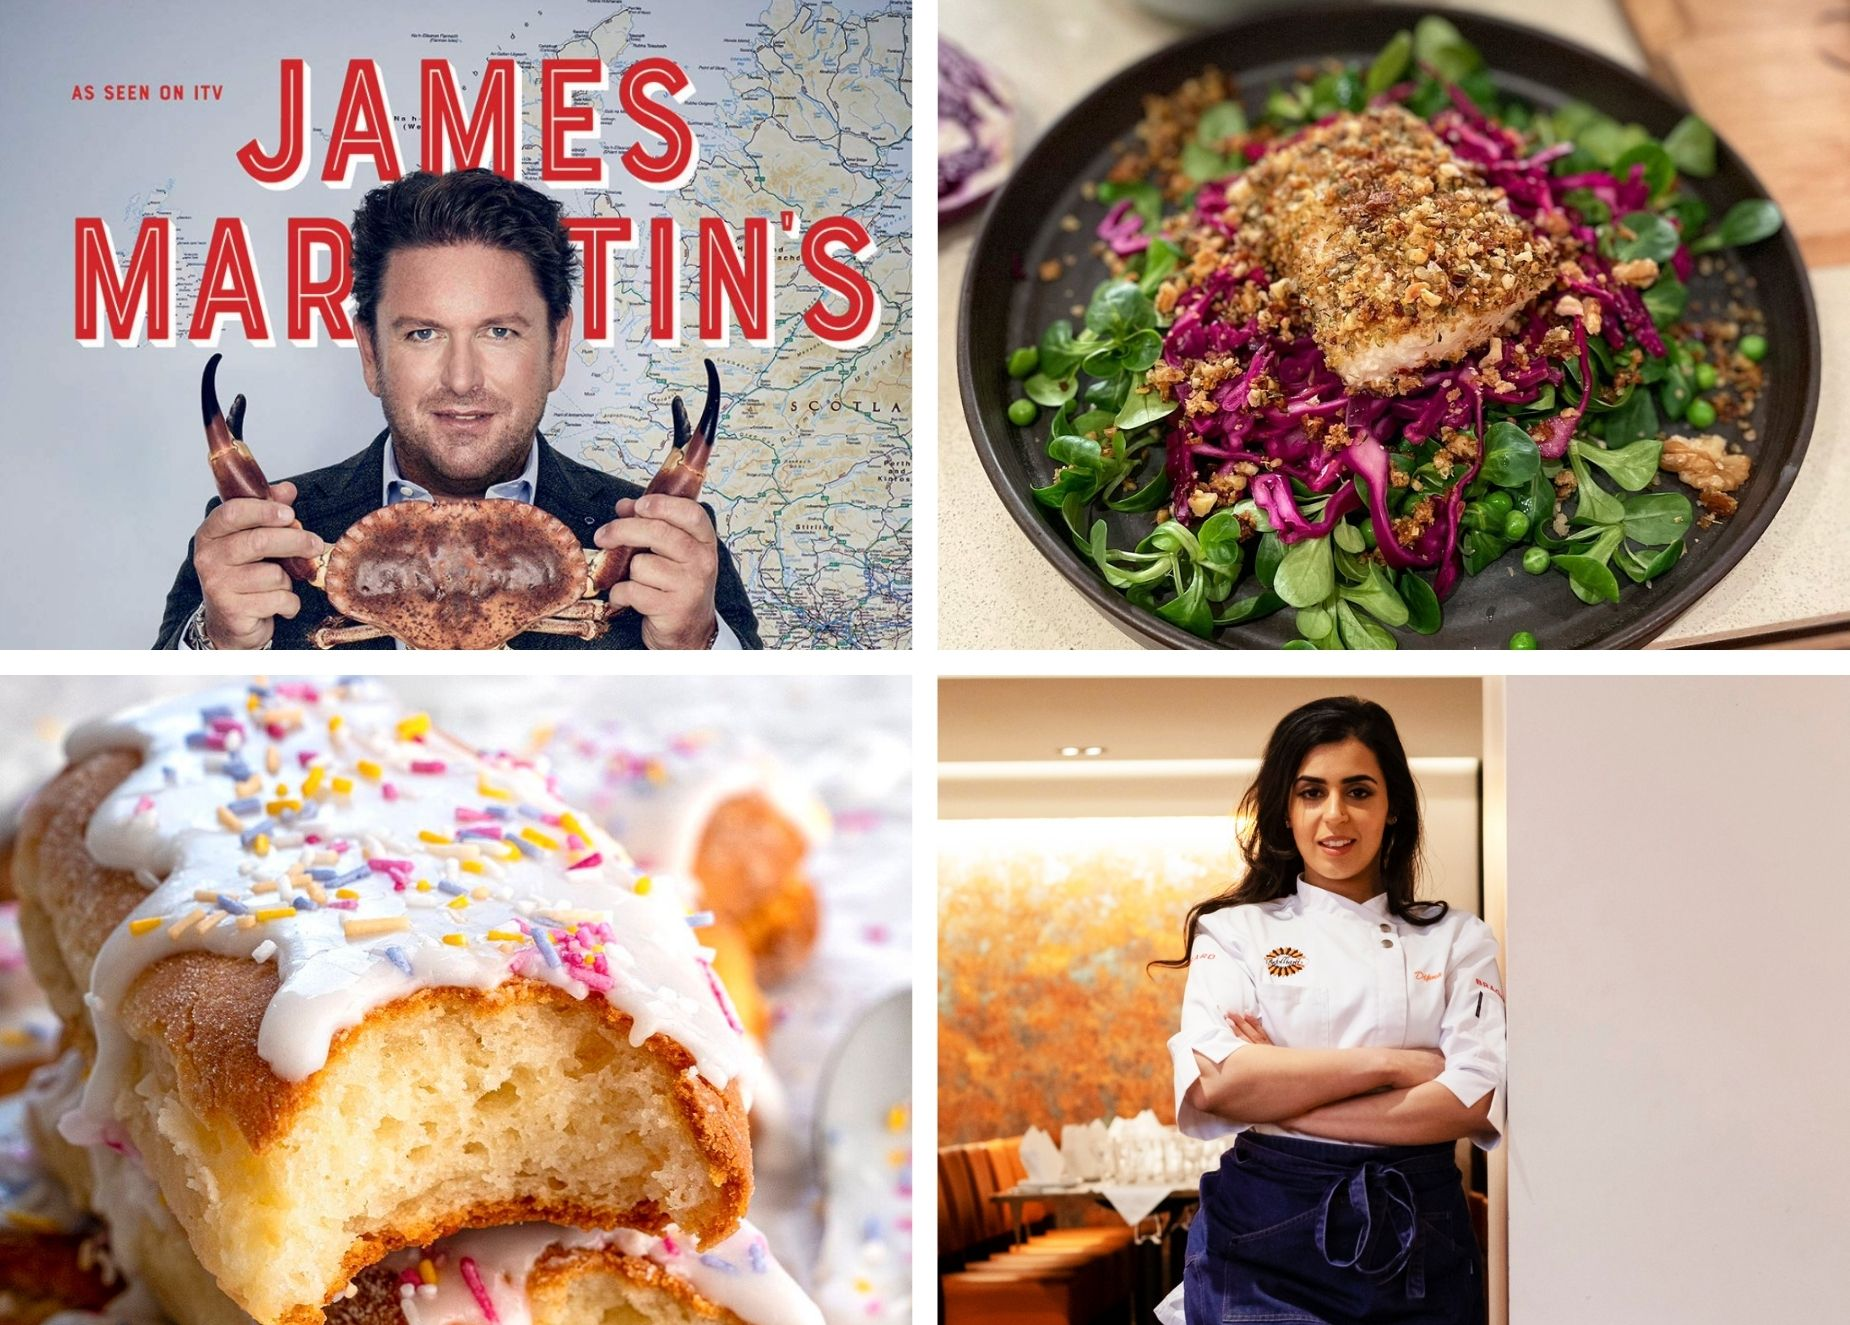 Variety is the spice of life: 4 x new cookbooks to up your home-cooking game